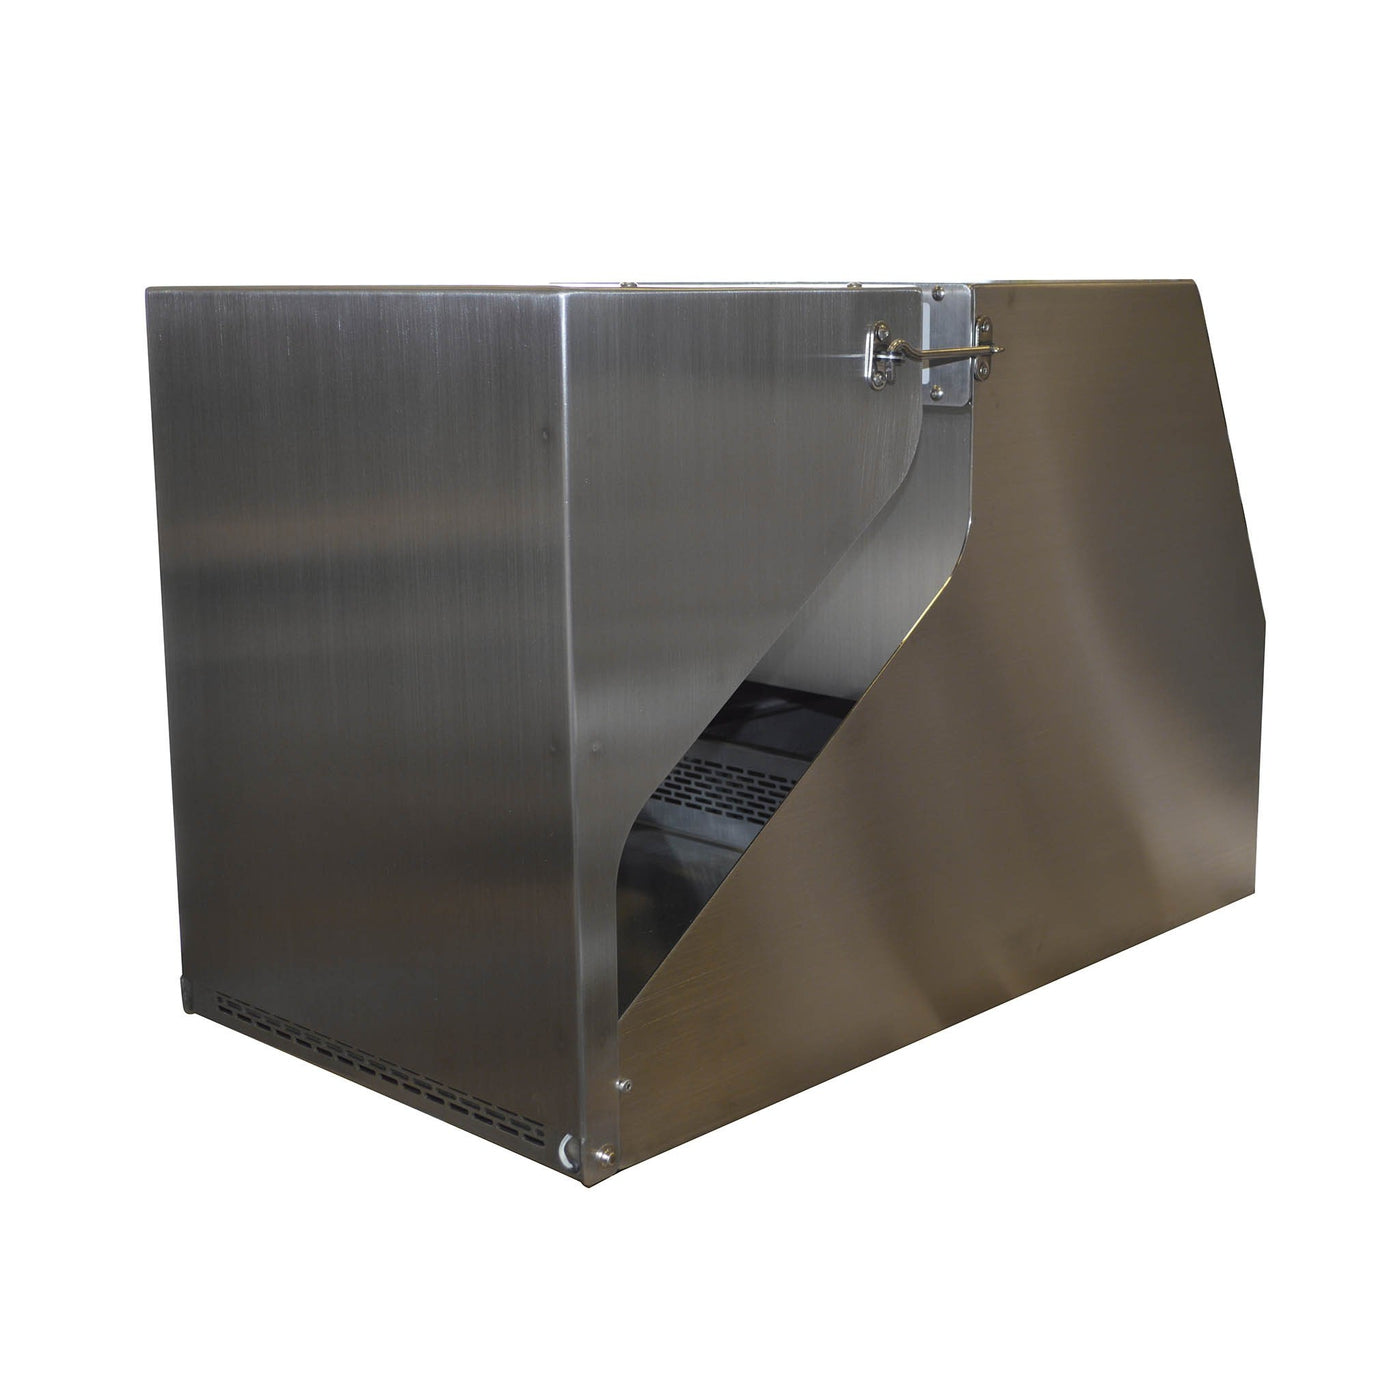 Ventilated Formalin Station-Pathology Grossing Stations-Mortech Manufacturing Company Inc. Quality Stainless Steel Autopsy, Morgue, Funeral Home, Necropsy, Veterinary / Anatomy, Dissection Equipment and Accessories